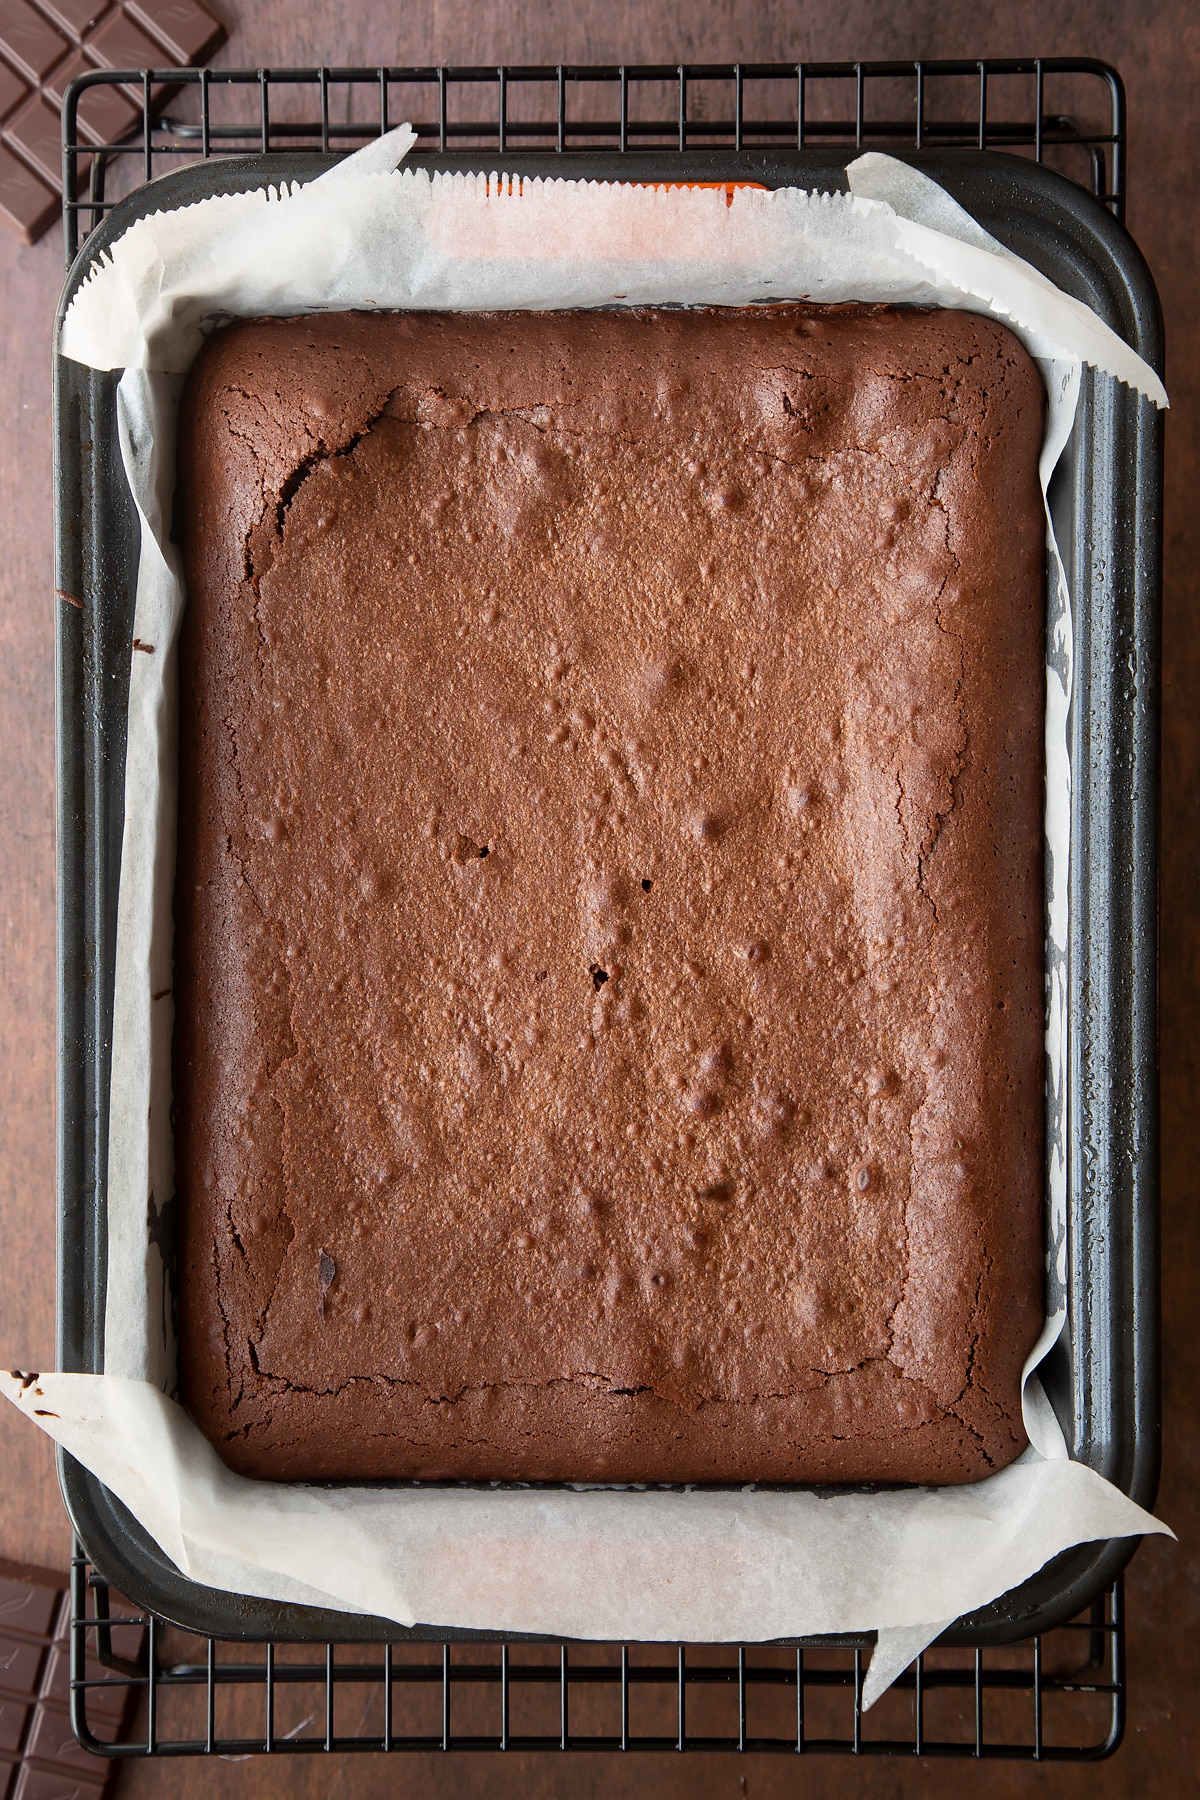 Freshly baked candy cane brownies in a lined tin.